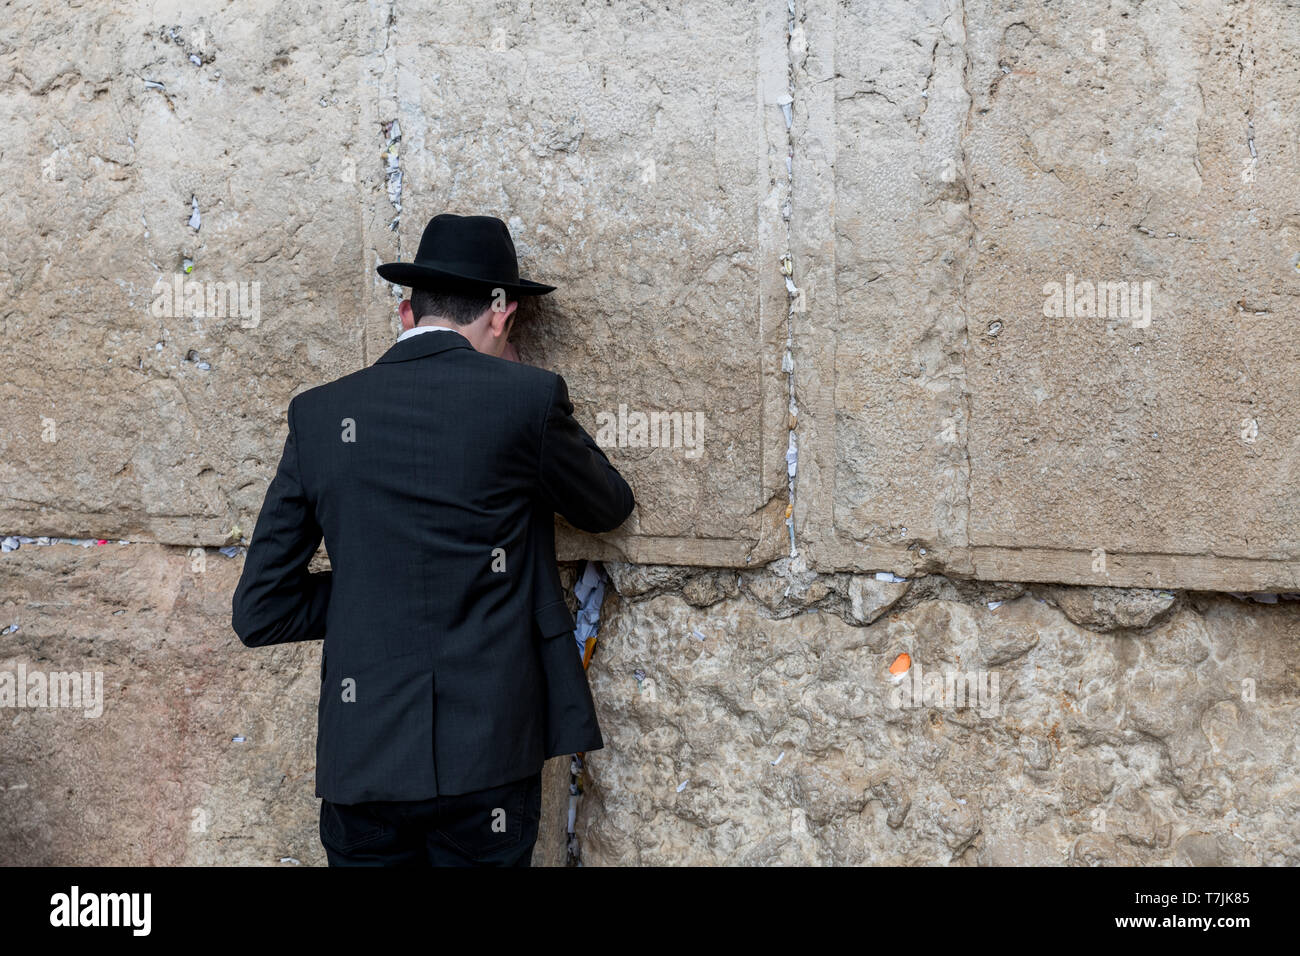 Jerusalem,israel,27-march-2019: Jewish man prays next to a crack filled with letters containing written prayers at the Western Wall in Jerusalem. Isra Stock Photo